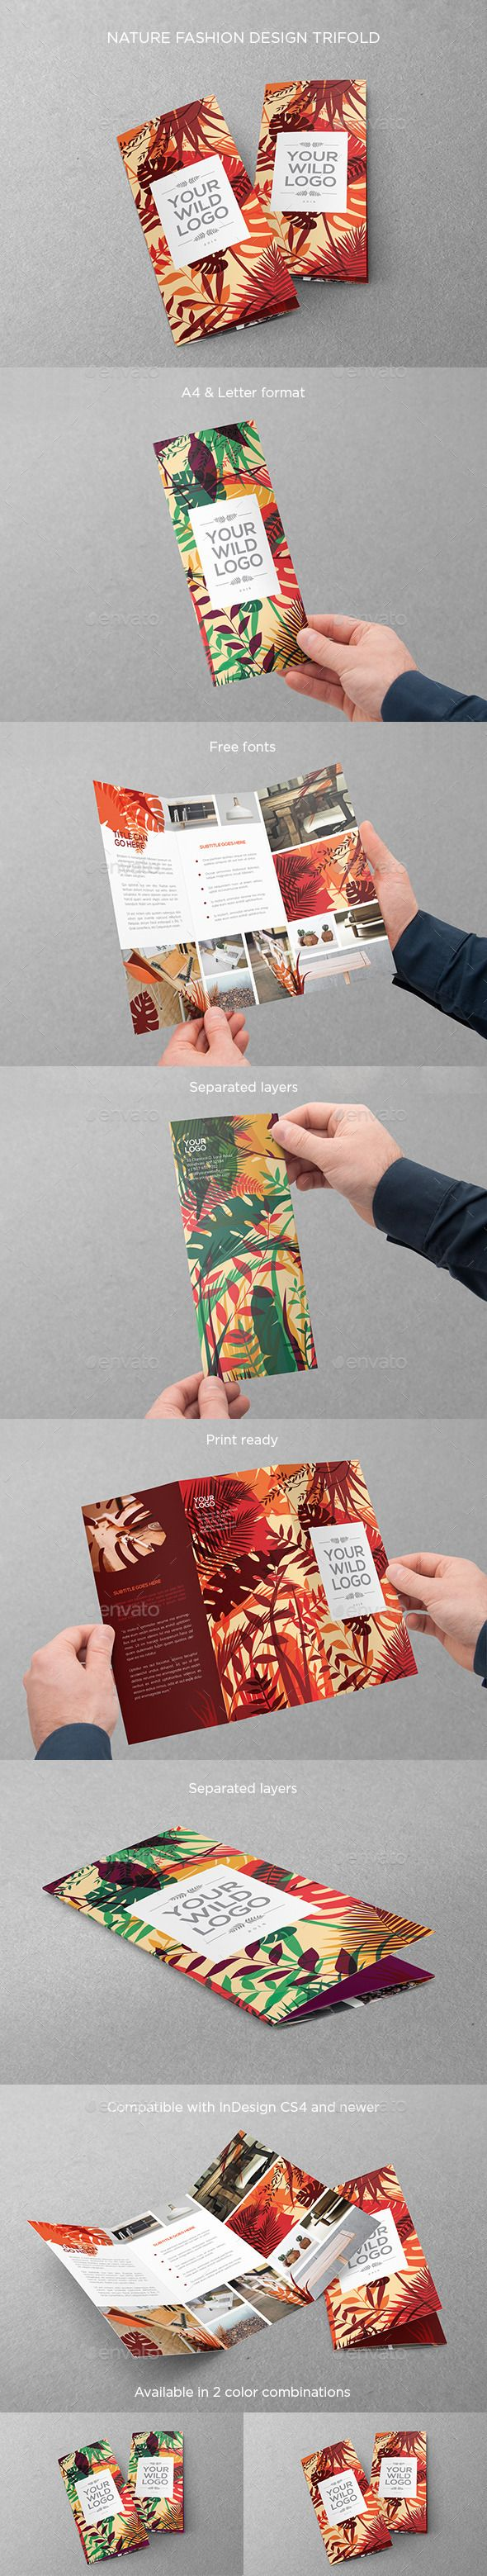 Nature Fashion Design Trifold Template #design Download: http://graphicriver.net/item/nature-fashion-design-trifold/12661446?ref=ksioks